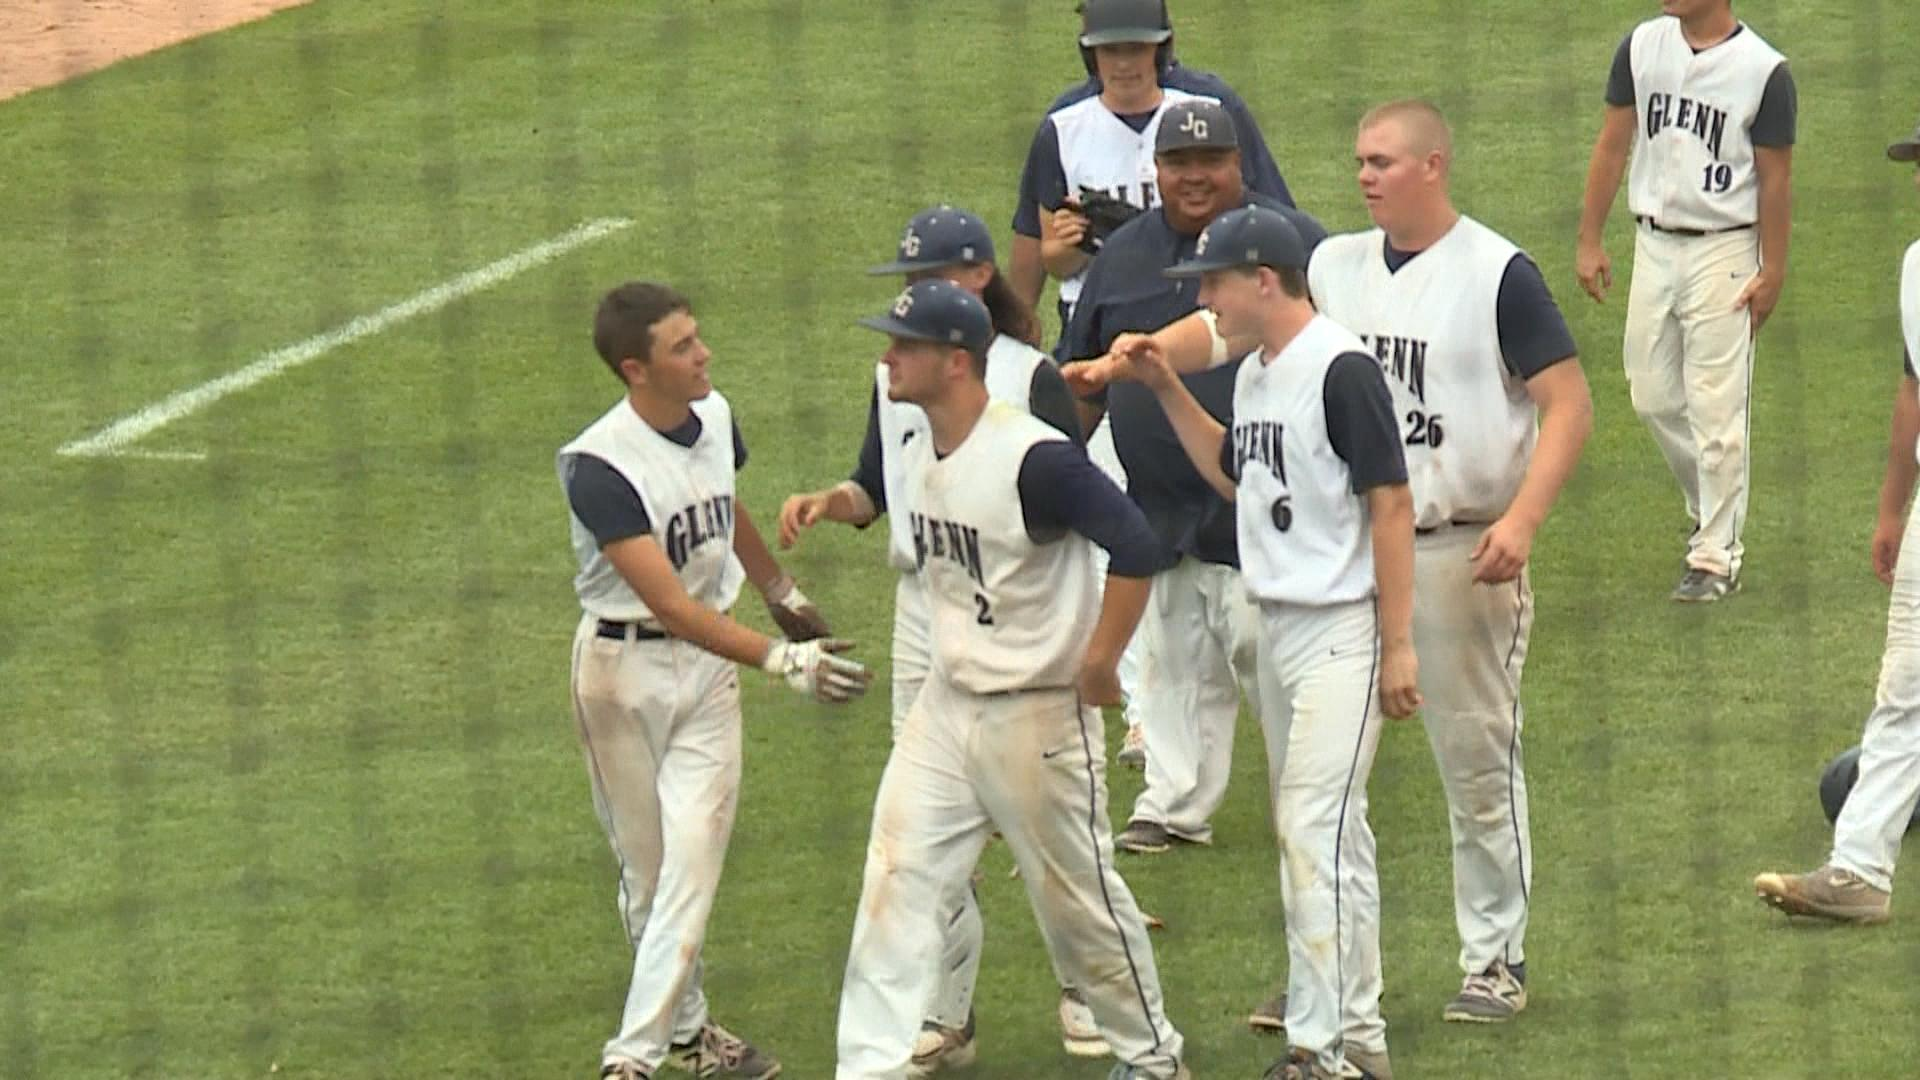 The Bay City John Glenn baseball team pats each other on the back for a season well played after a loss in the state championship game.